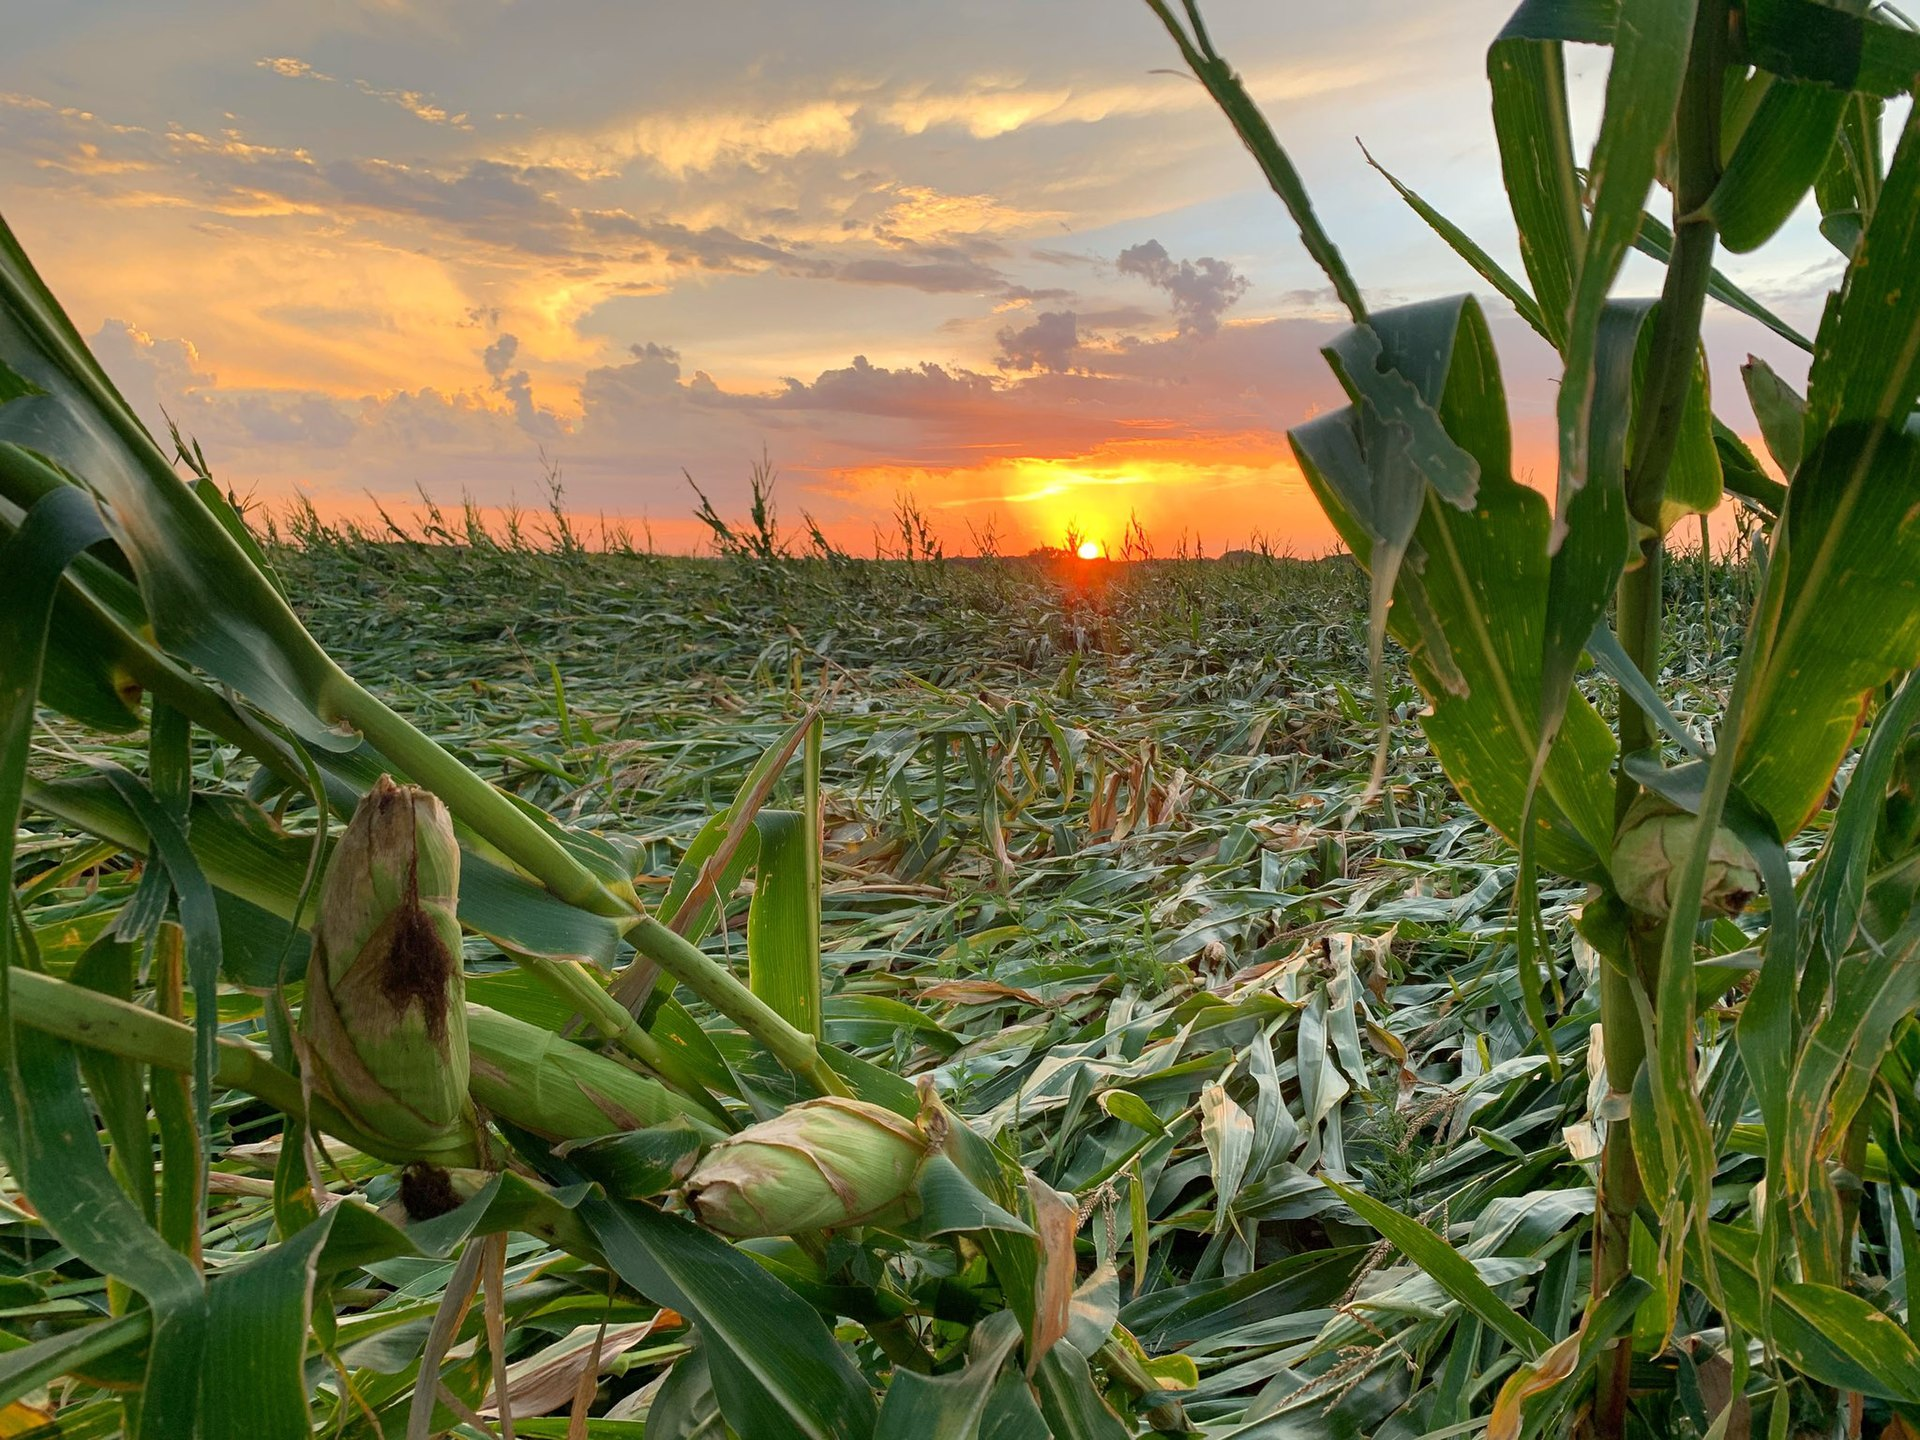 Farm field growing corn is shown, nearly all in sight has been flattened to the ground. Behind the flattened field, a sunset glows.